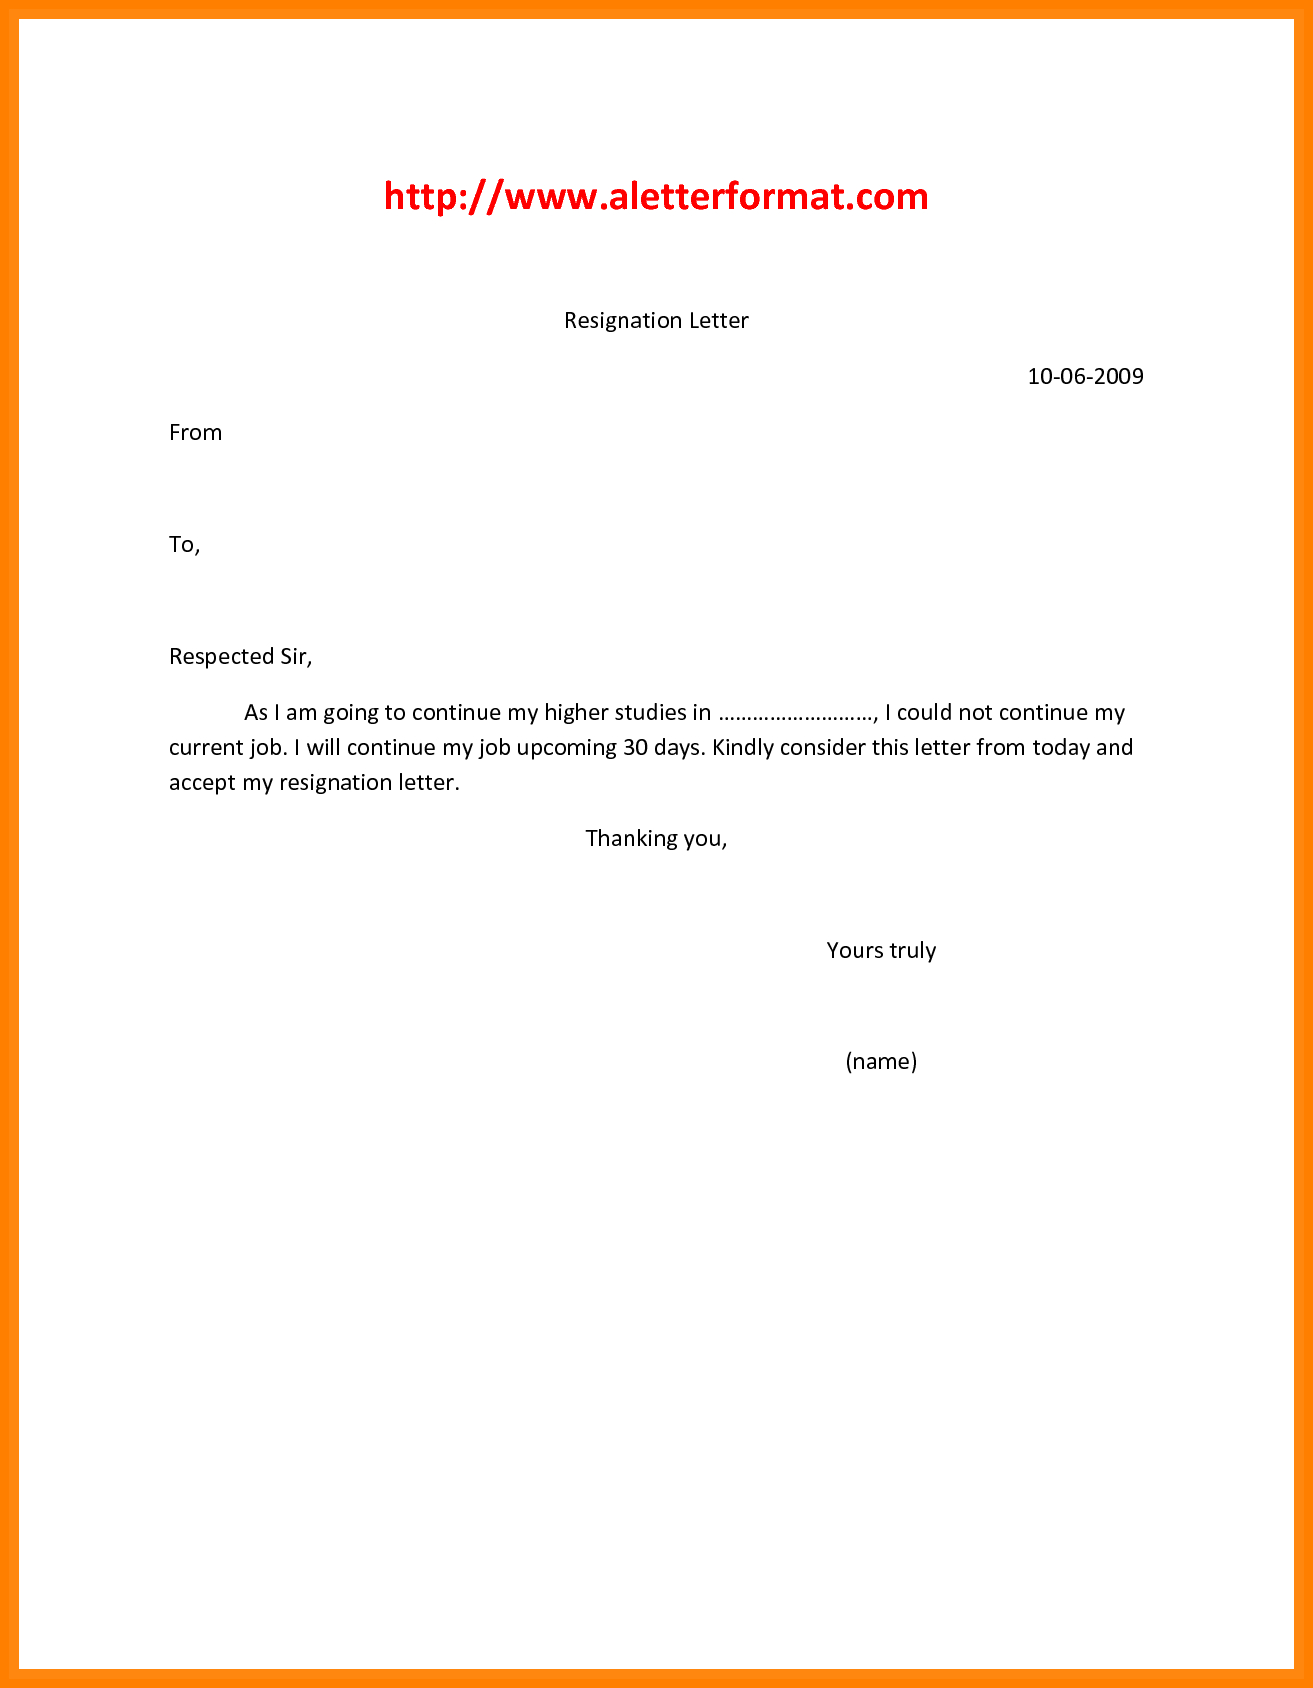 Resignation Letter Template Free Download - Letter for Resignation Pdf Job format Resign Template Free Download